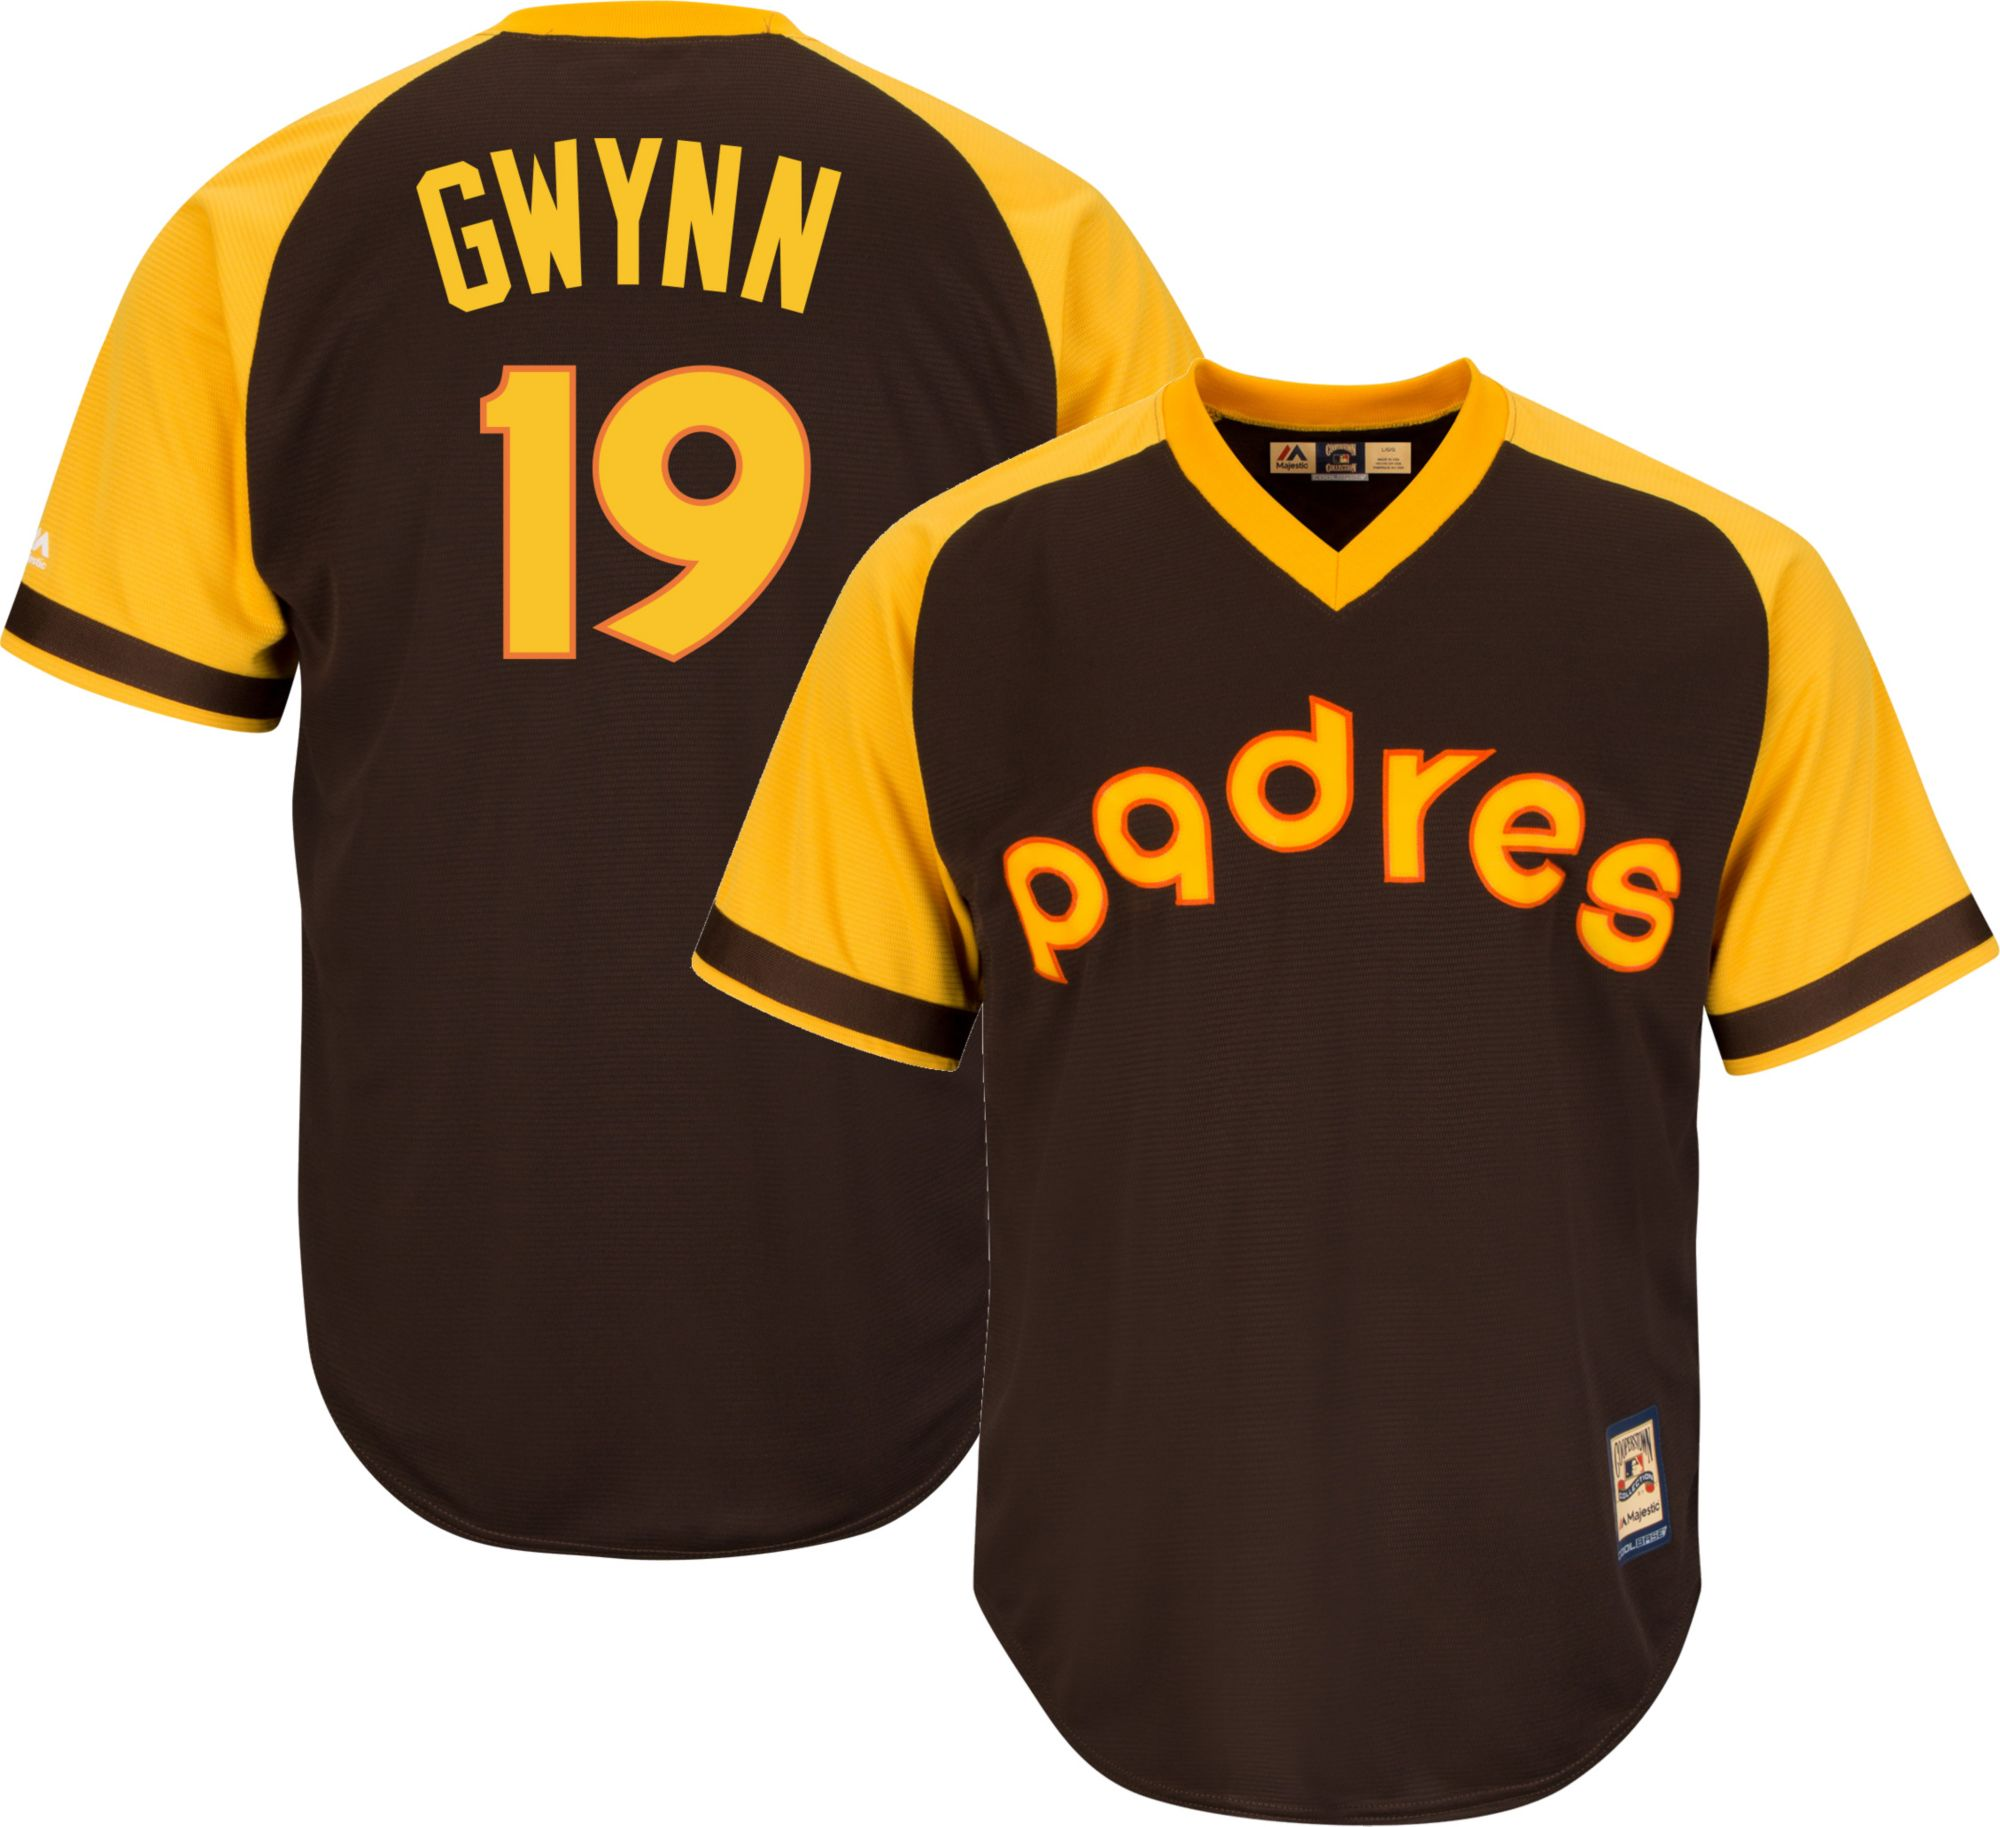 ... baseball jerseys 58ad5 f8841  shop majestic mens replica san diego  padres tony gwynn cool base brown cooperstown jersey 43a49 f20ef 4c00ef039